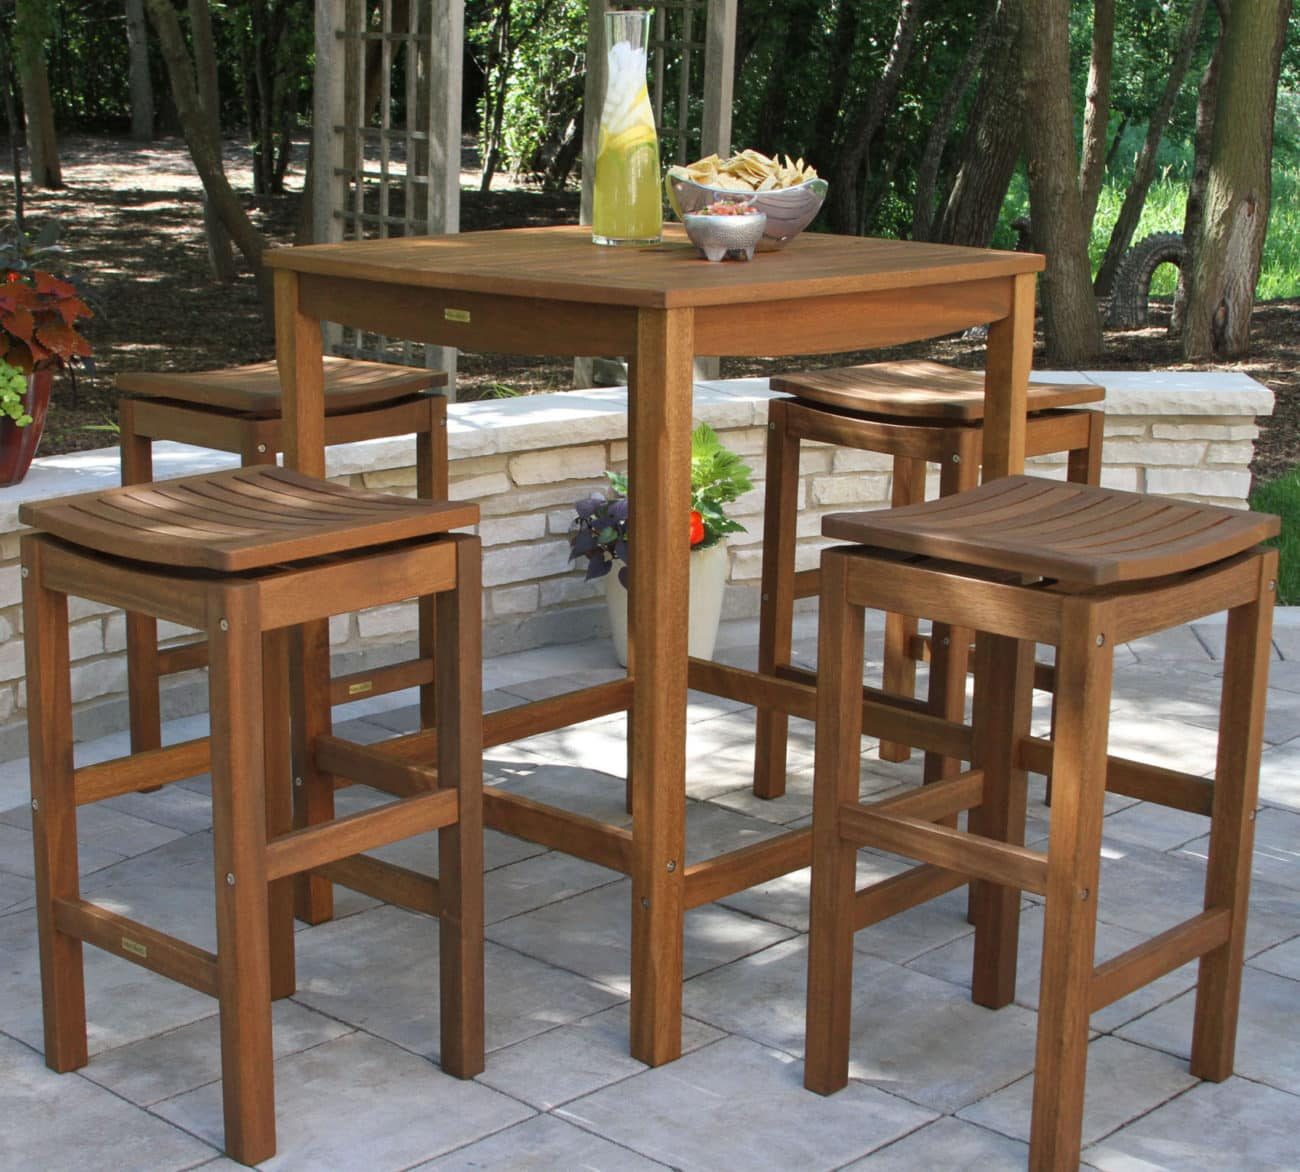 Marvelous Hardwood Outdoor Bar Height Tables And Chairs For Patio Uwap Interior Chair Design Uwaporg